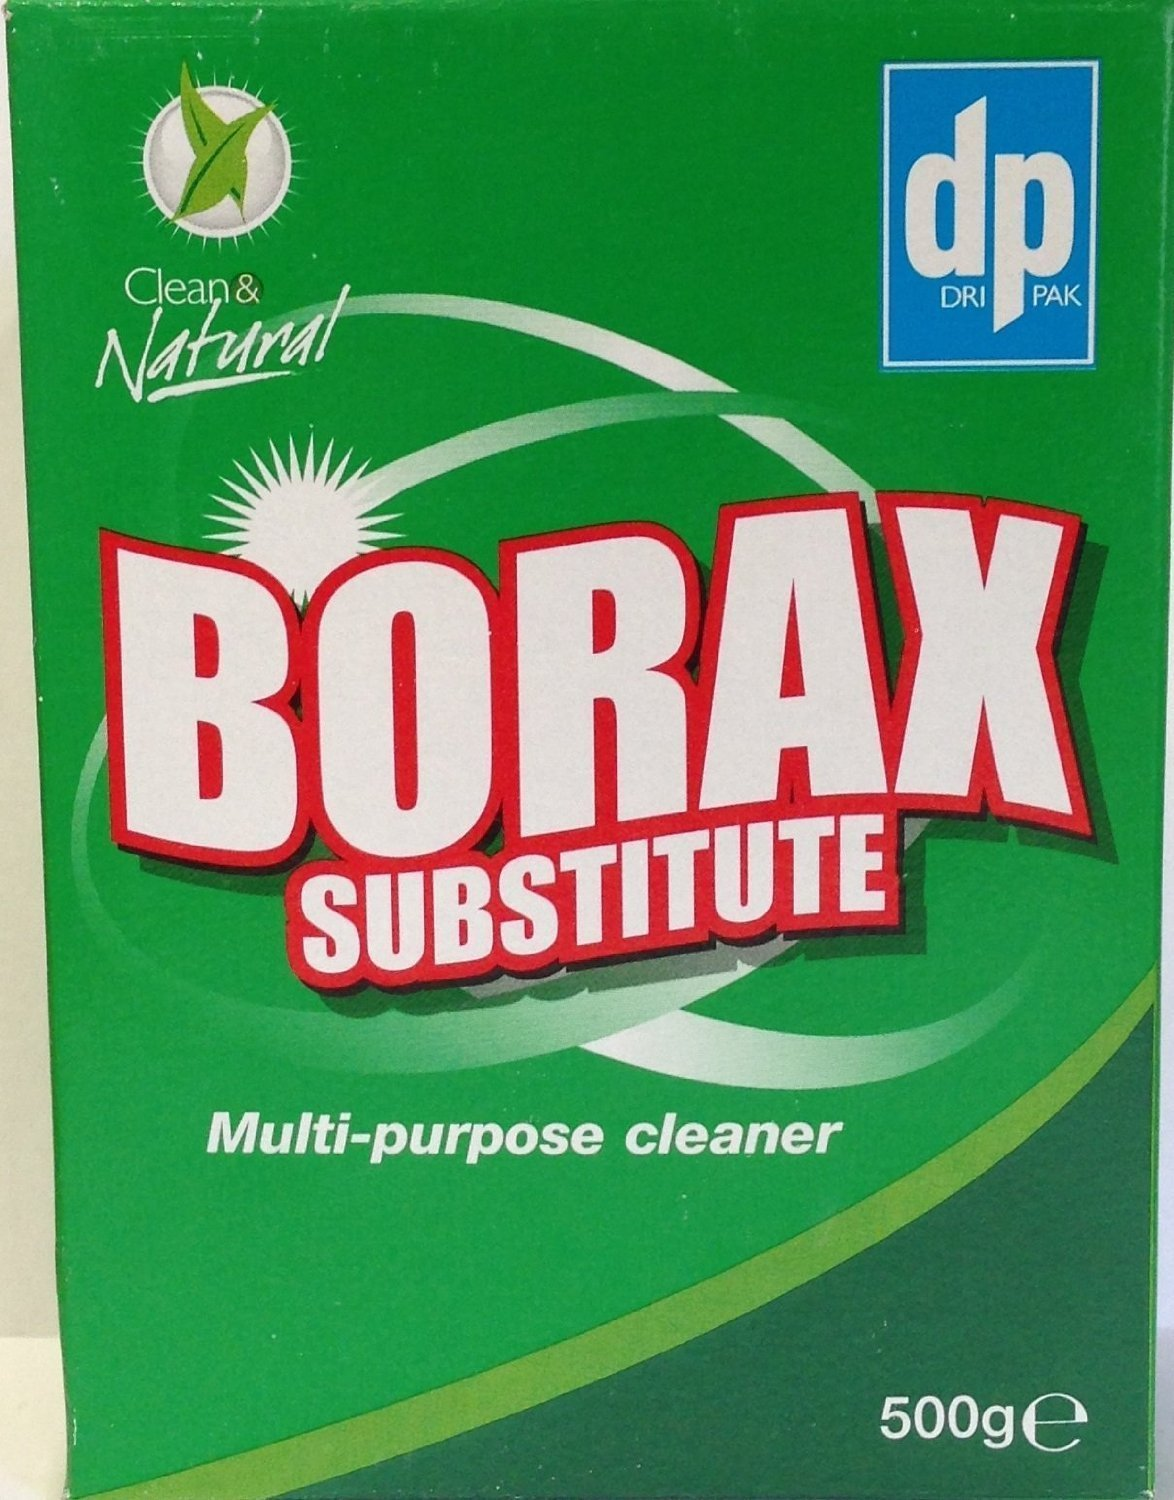 Clean and Natural Borax Substitute 500gr